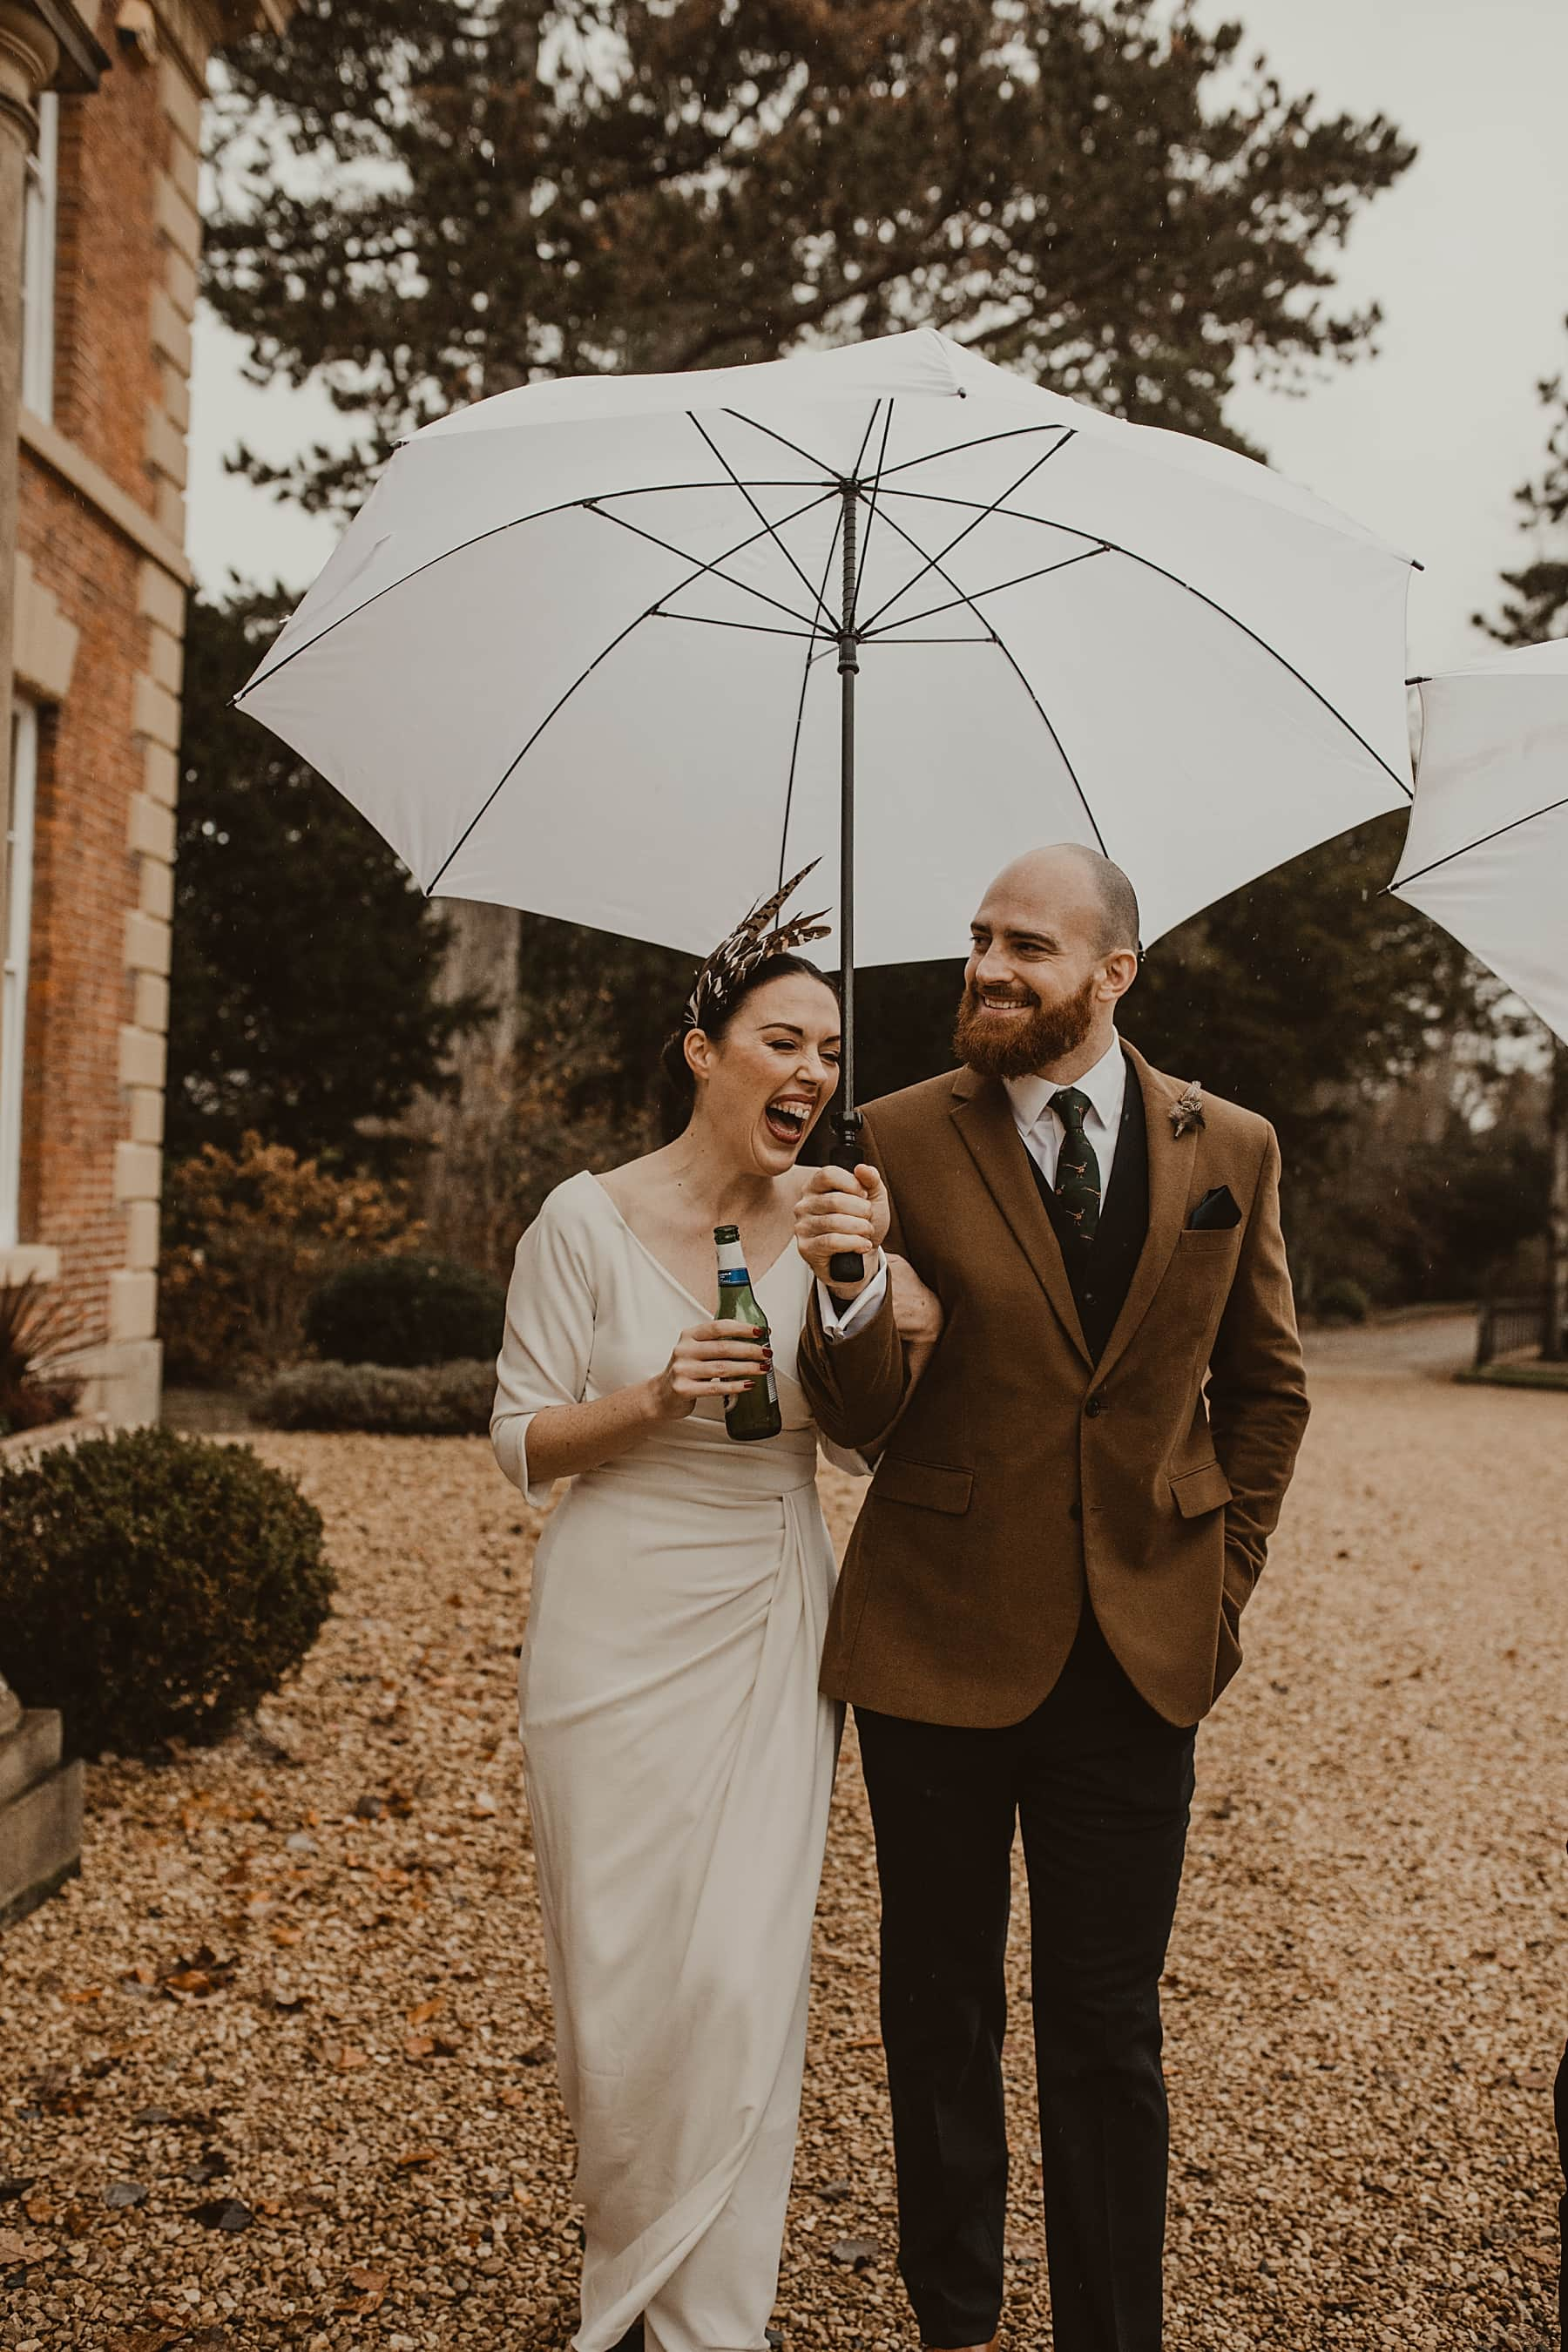 Bride and groom walking in rain